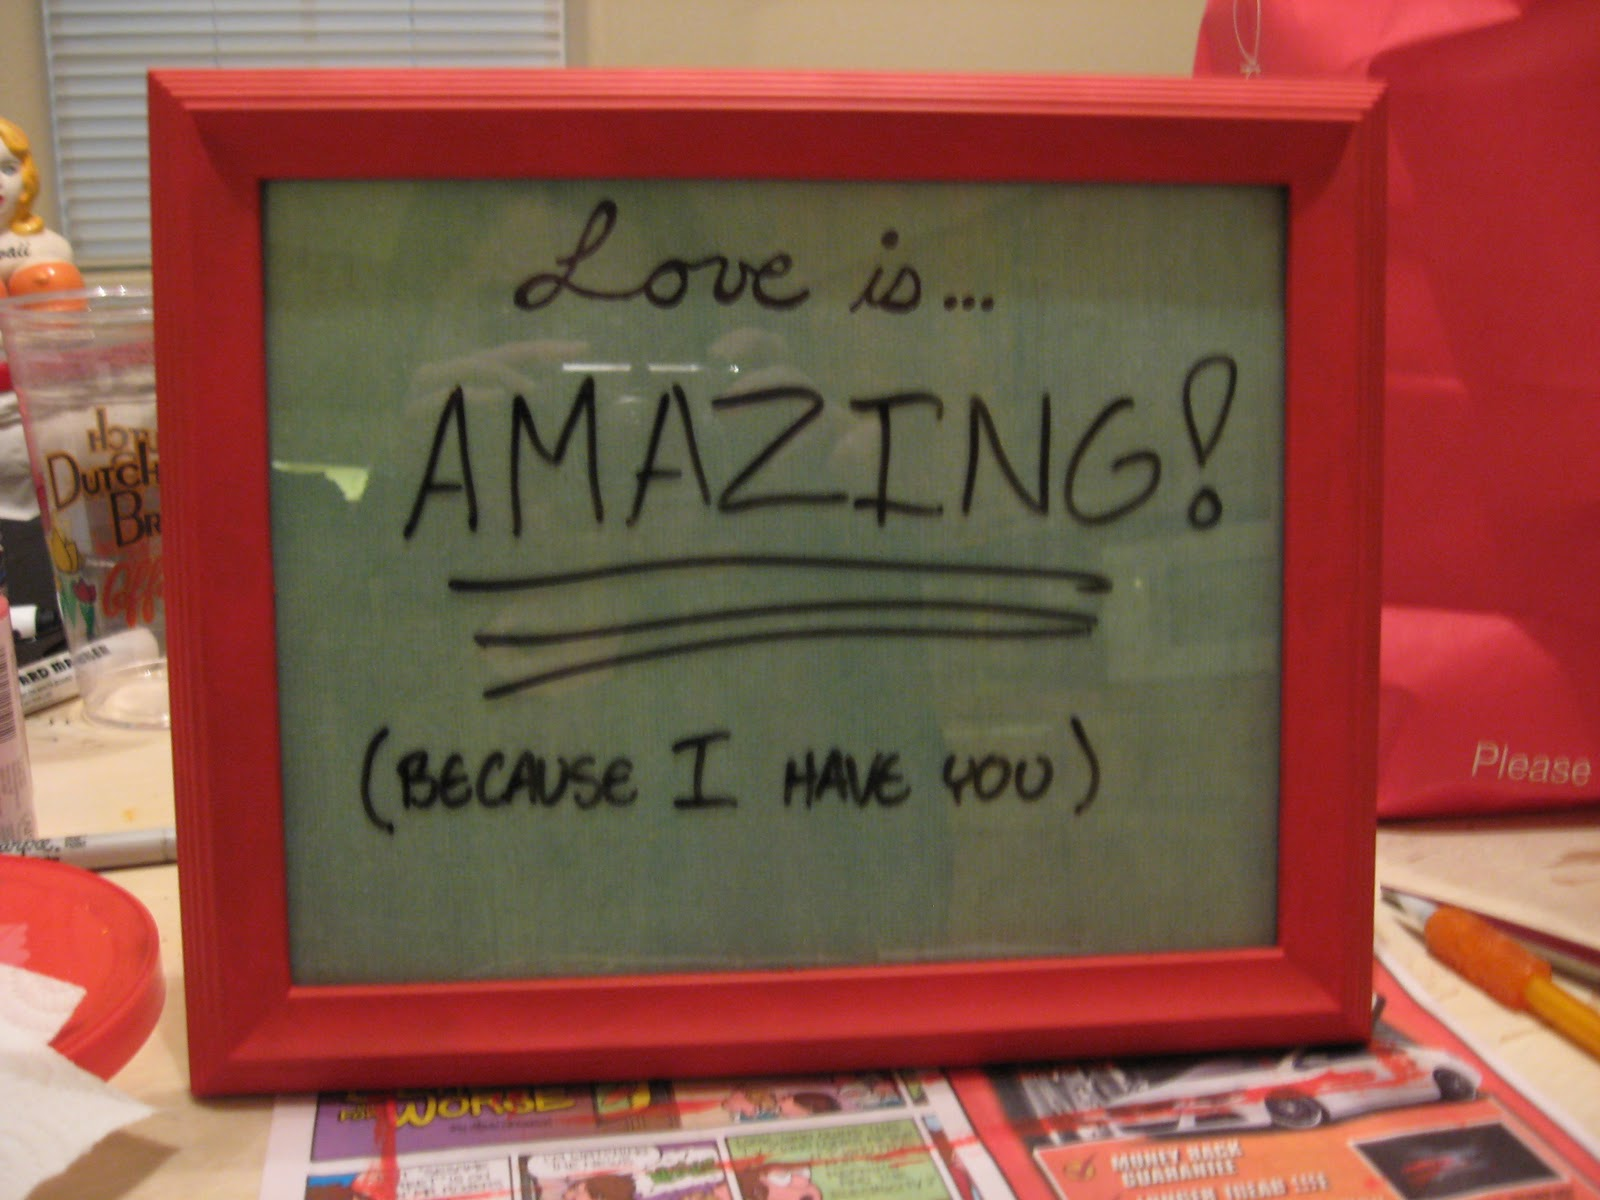 How to scrapbook for boyfriend - I Just Took A Picture Frame From The Dollar Store Painted It Red And Drew The Love Is On The Scrapbook Paper Before Going Over It With A Permanent